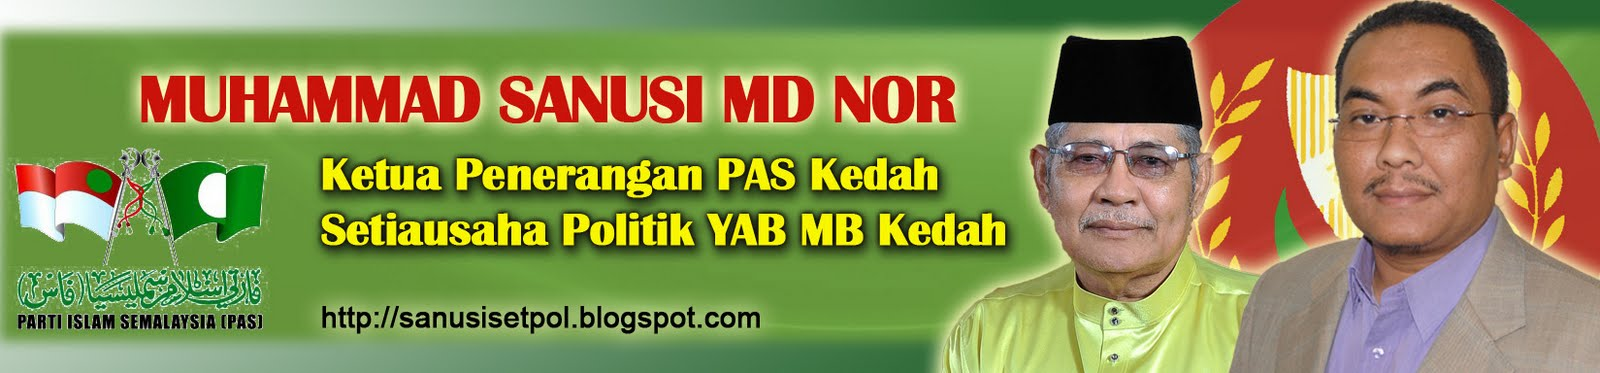 MUHAMMAD SANUSI MD NOR